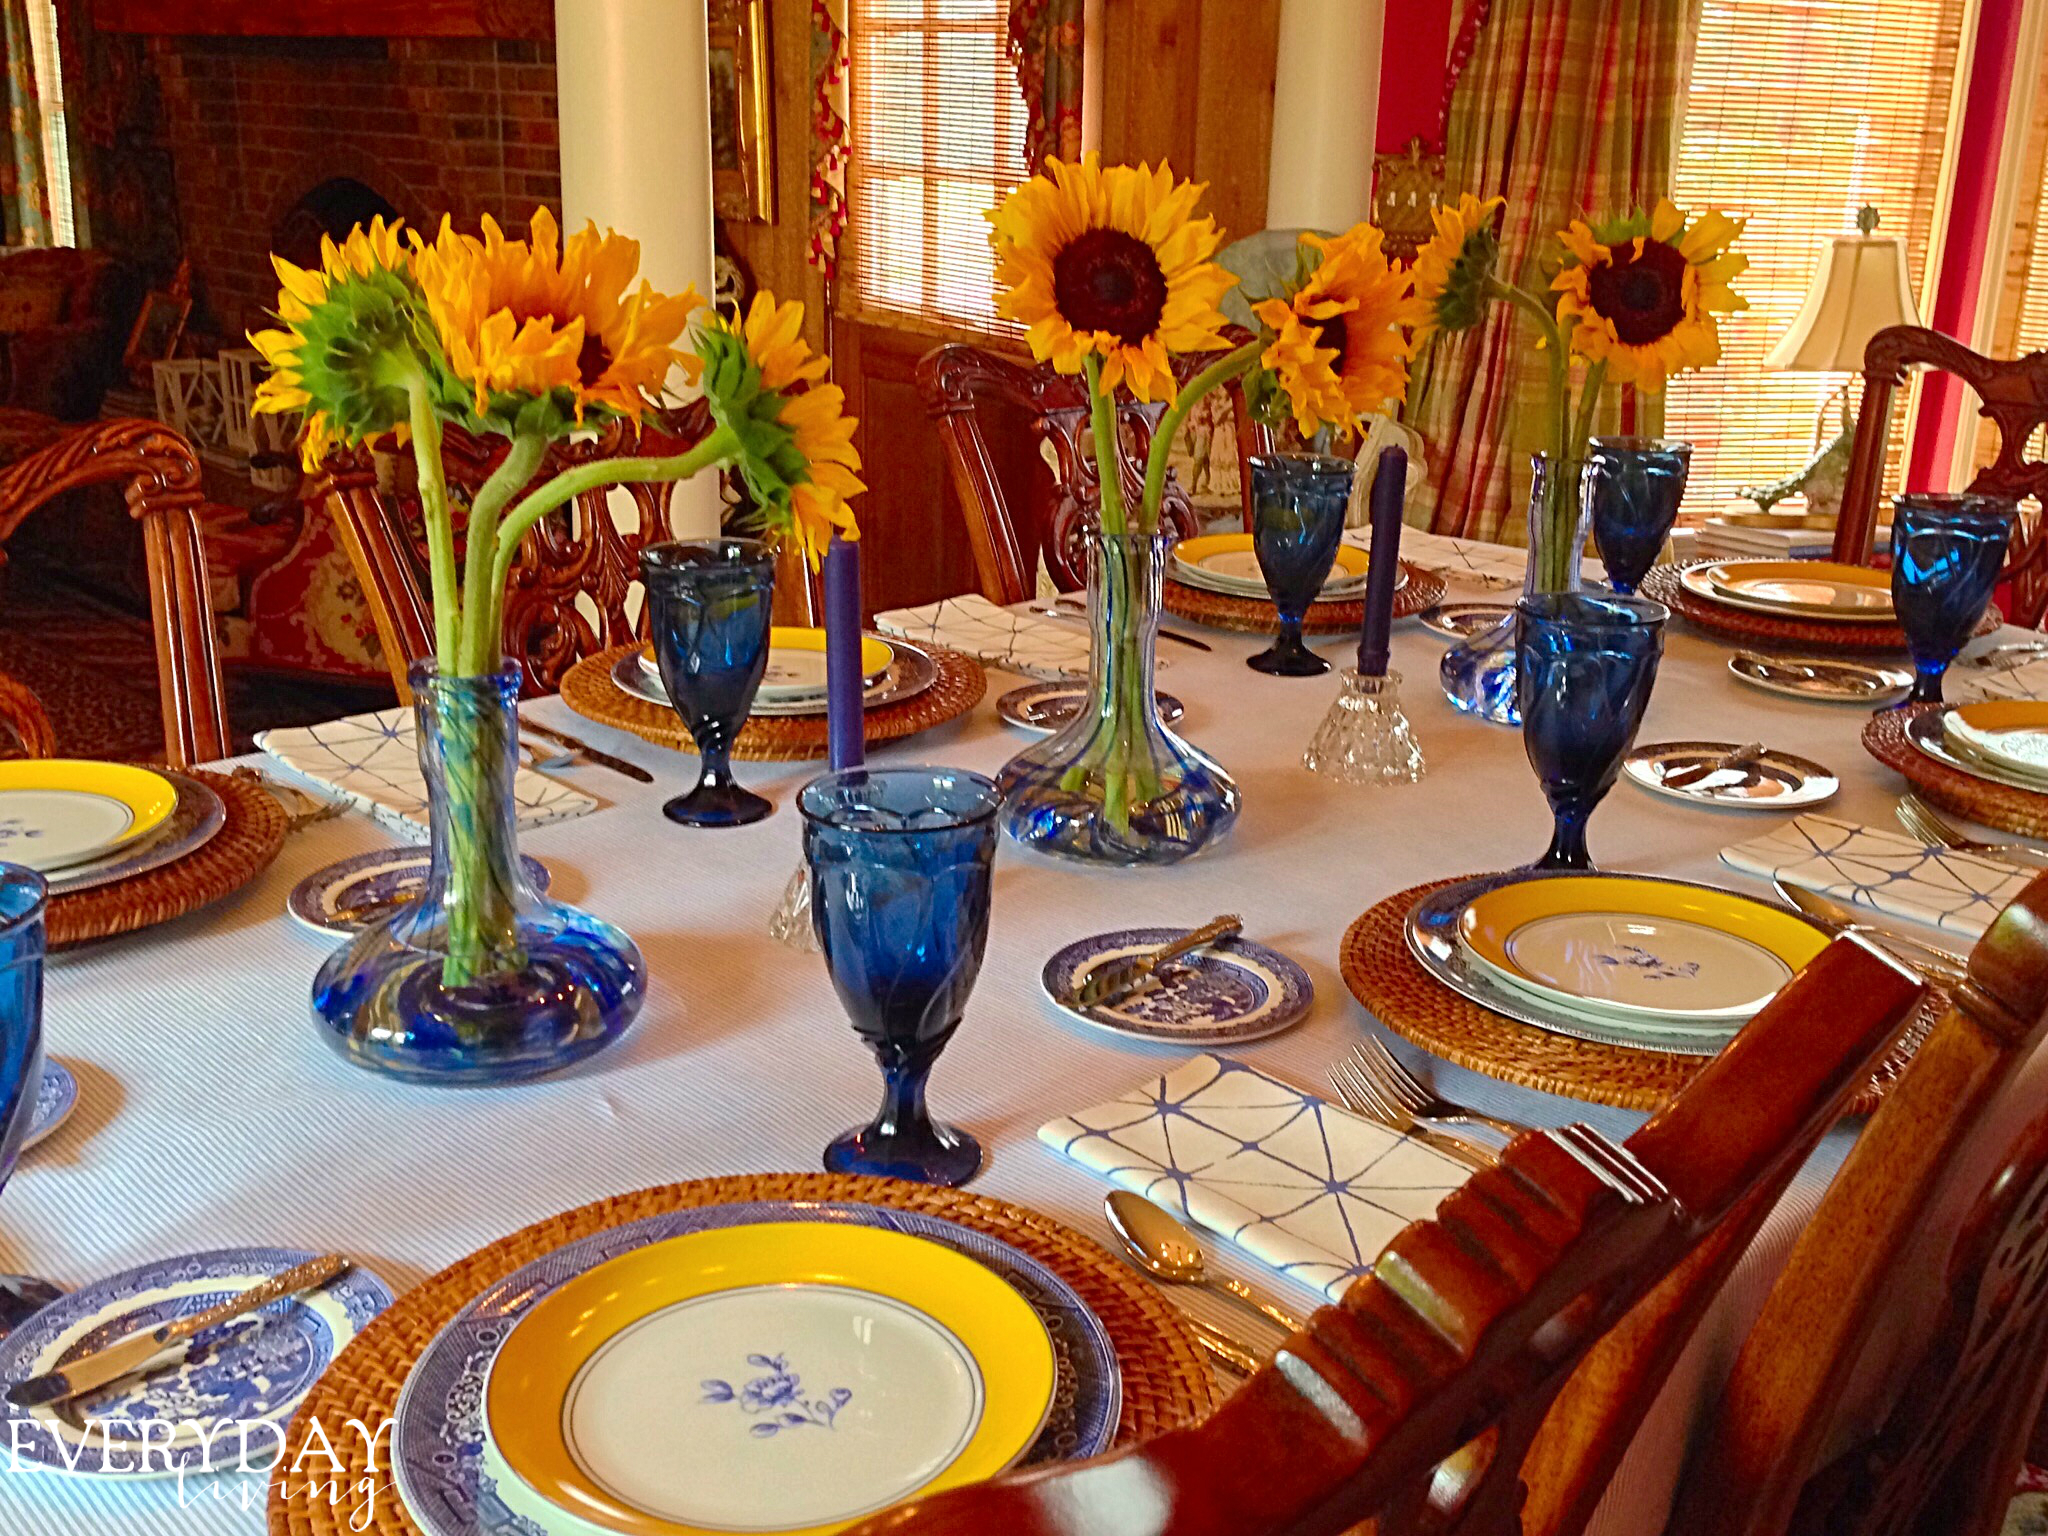 & Tablescape Tuesday: Sunflowers \u0026 Summer